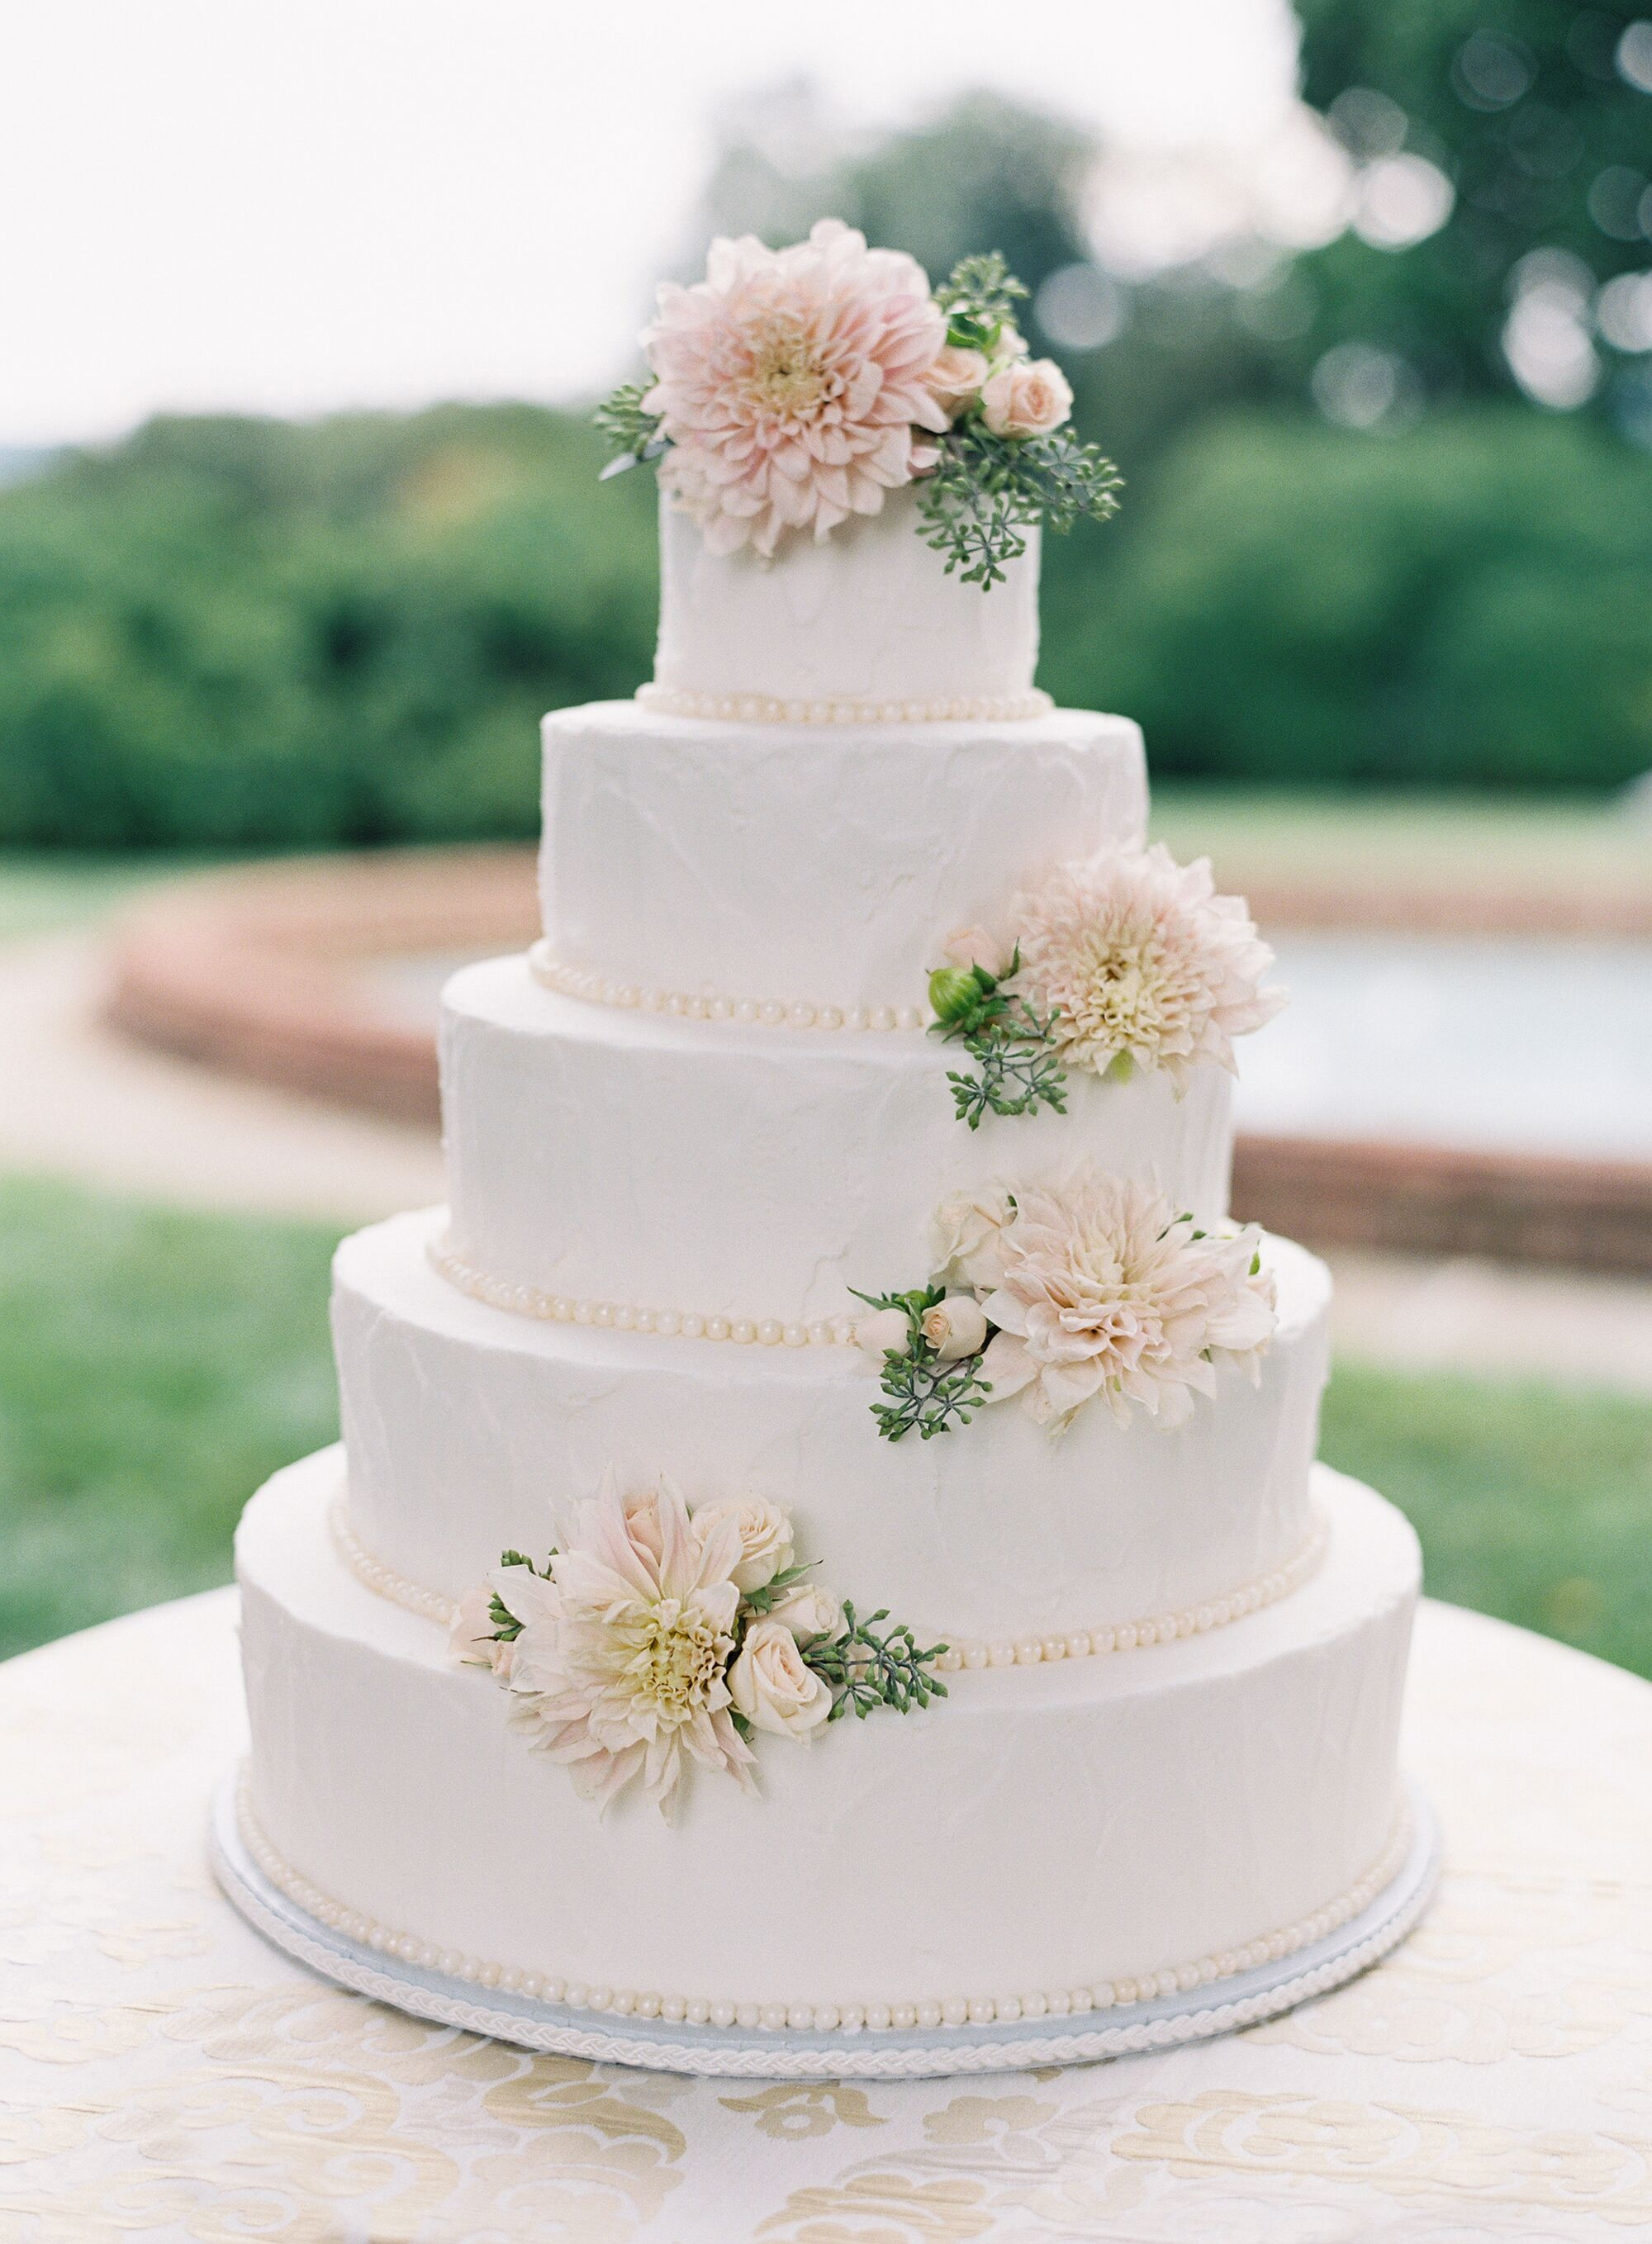 romantic wedding cakes photos wedding cakes pictures Carrot Wedding Cake with Cream Cheese Frosting